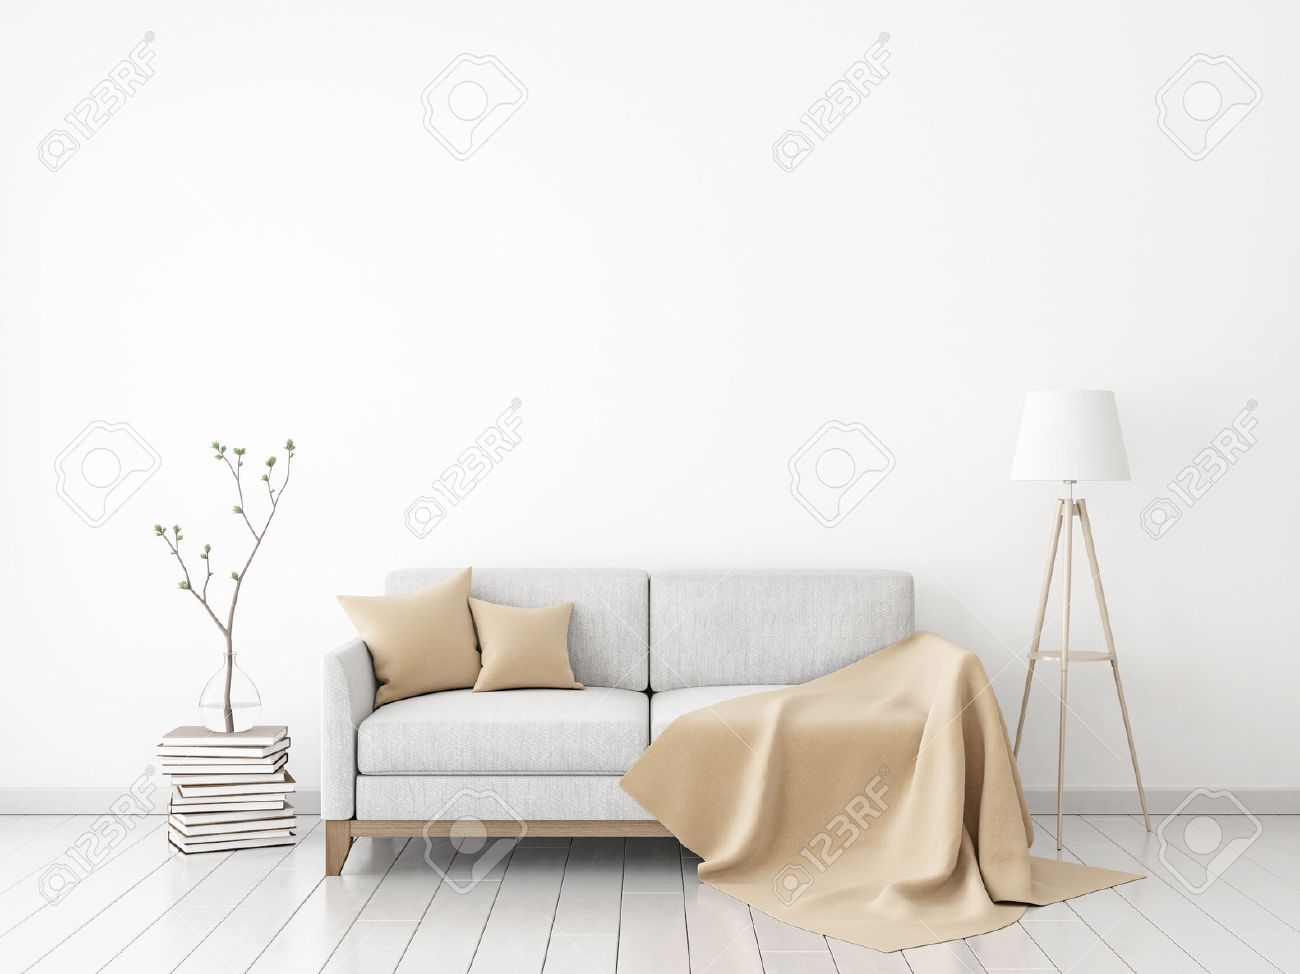 Interior Wall Mock-up With Fabric Sofa, Plaid And Pillows On.. Stock ...